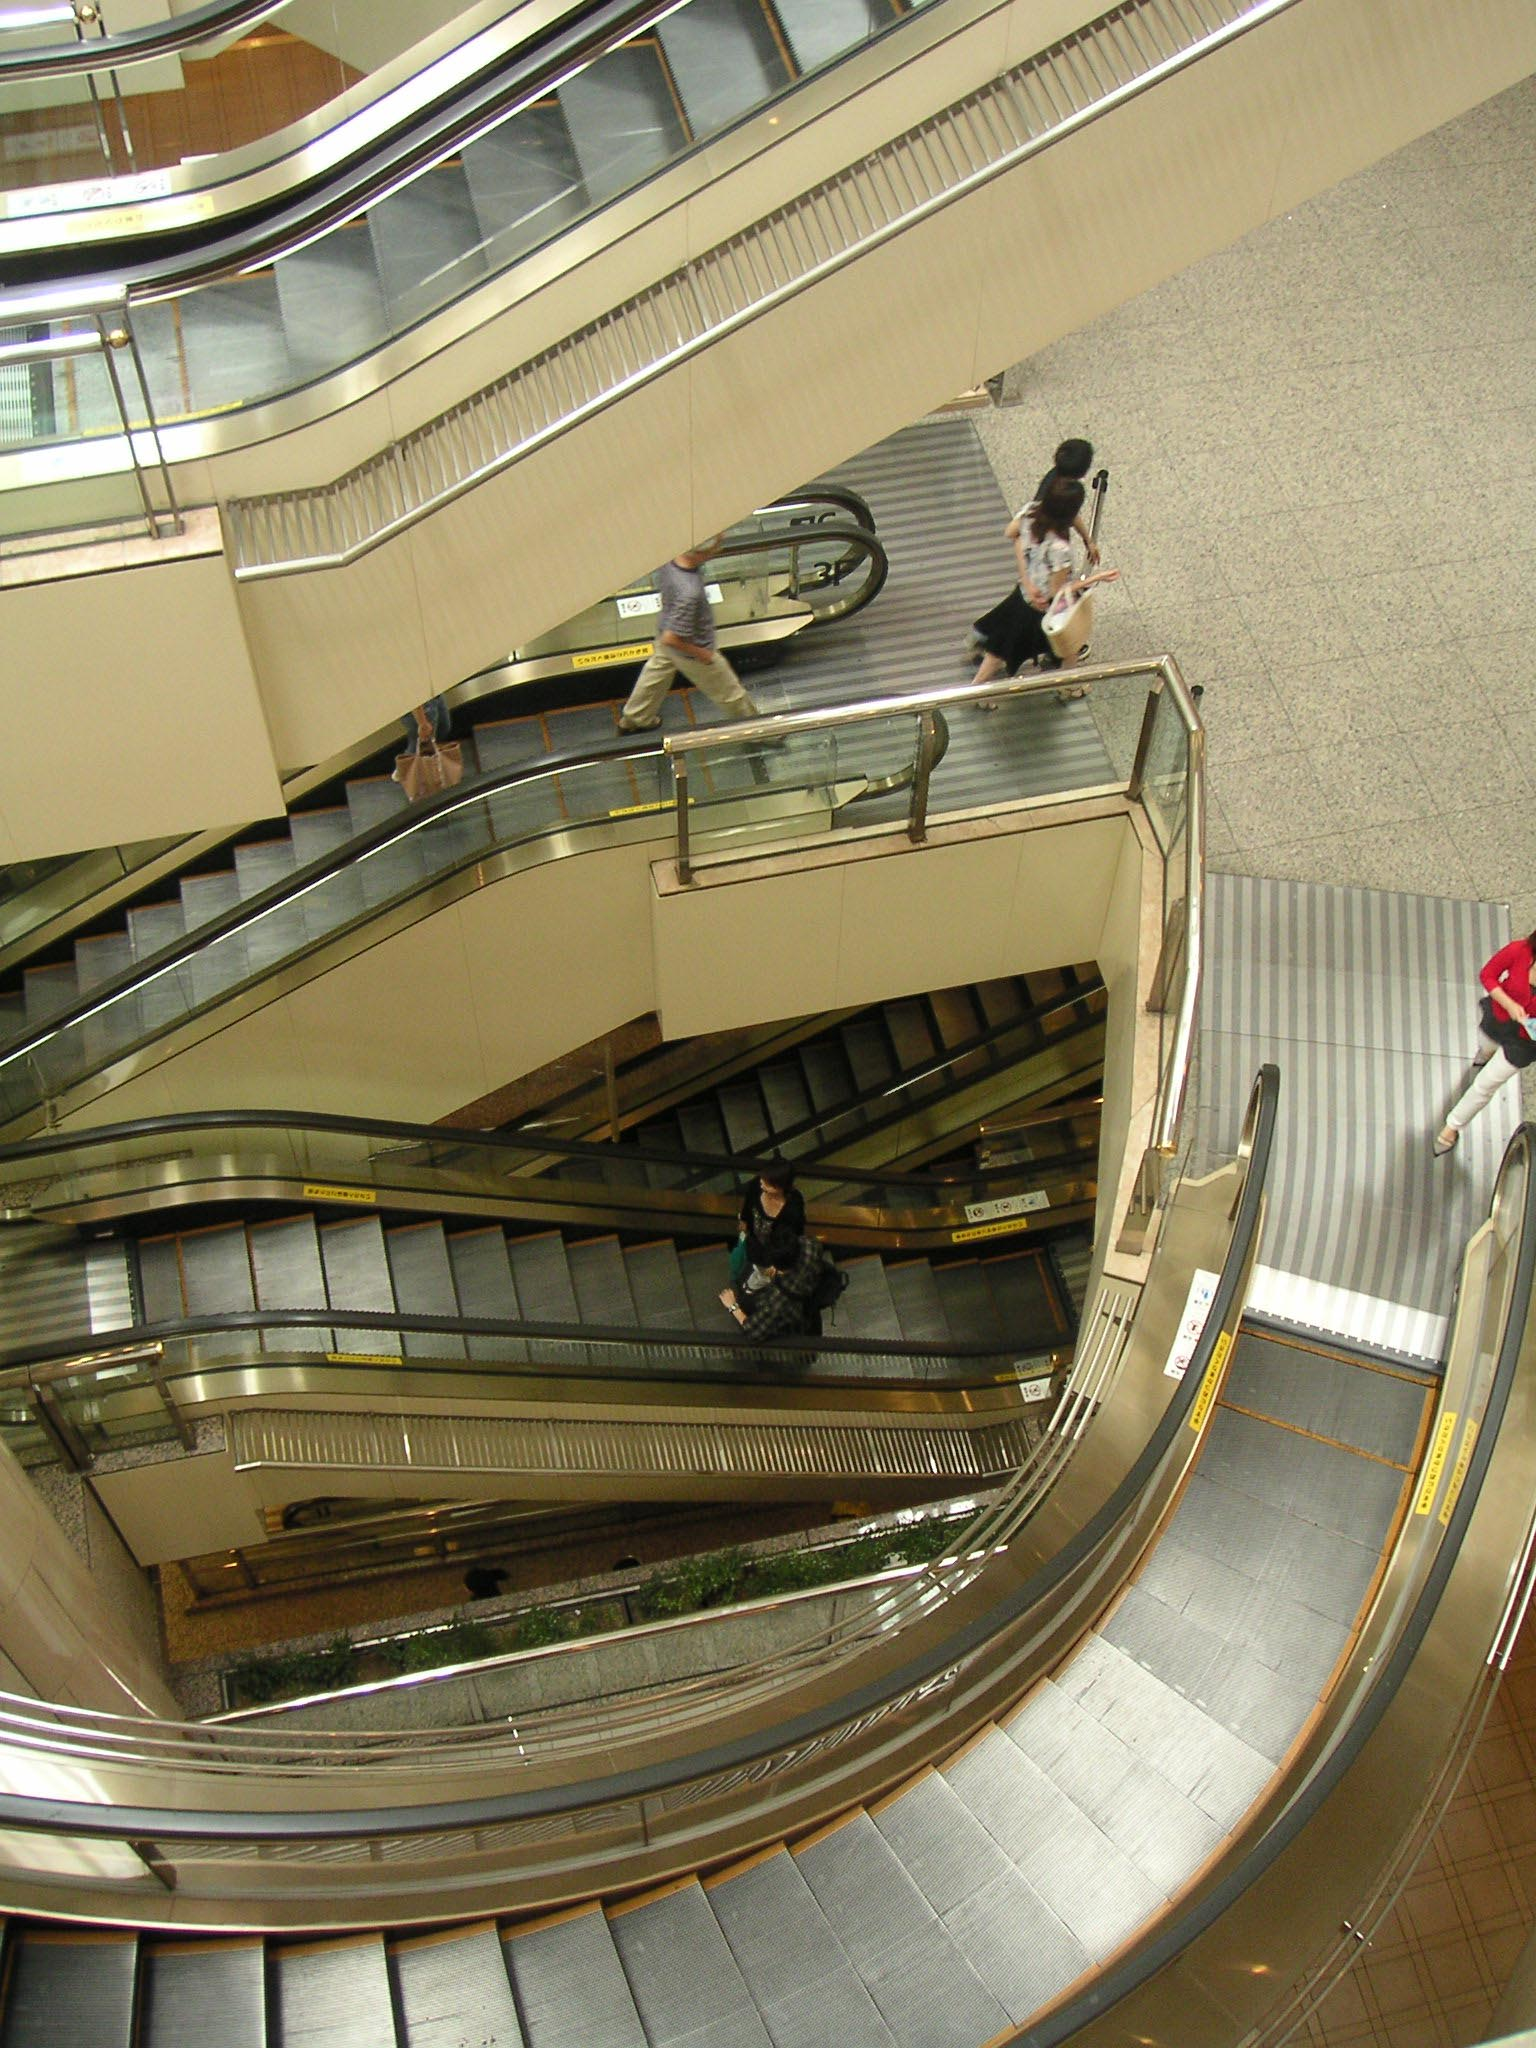 Escalator Wikipedia Couk O View Topic Led Stair Lights Require Wiring In Series Shortest Examplesedit